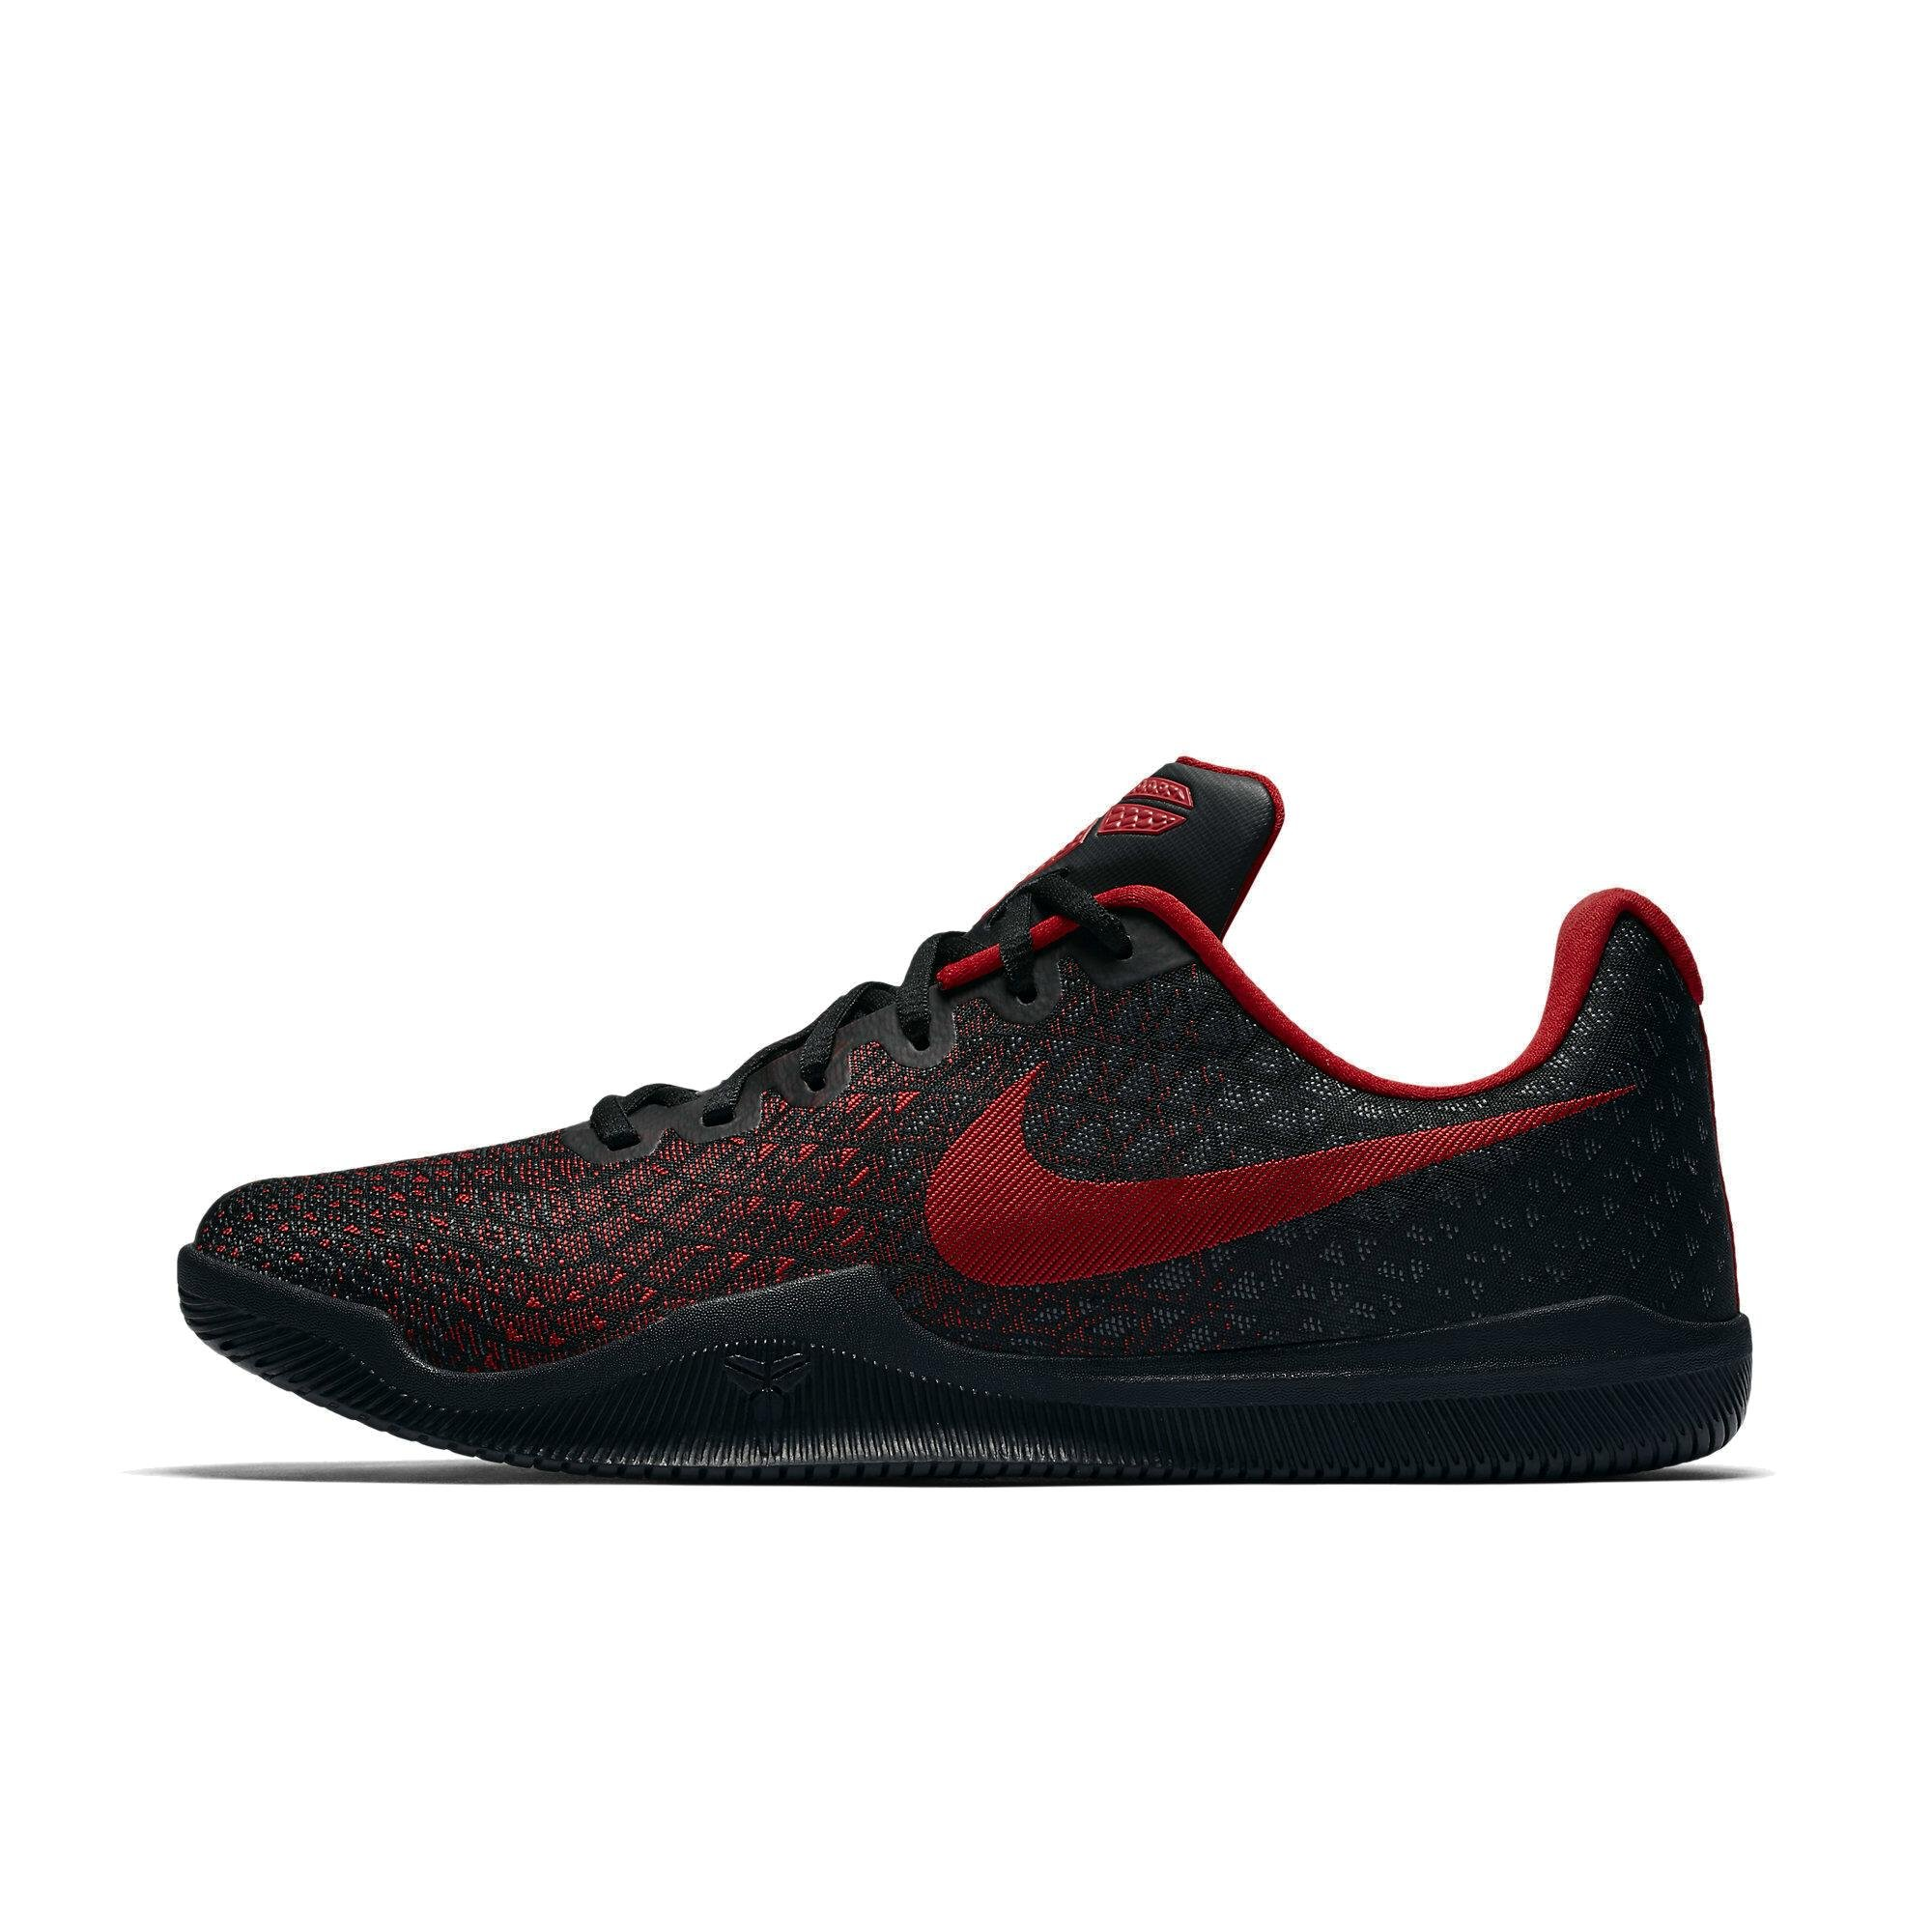 6c9c407d7 Galleon - Nike Men s Kobe Mamba Instinct Basketball Shoes (11